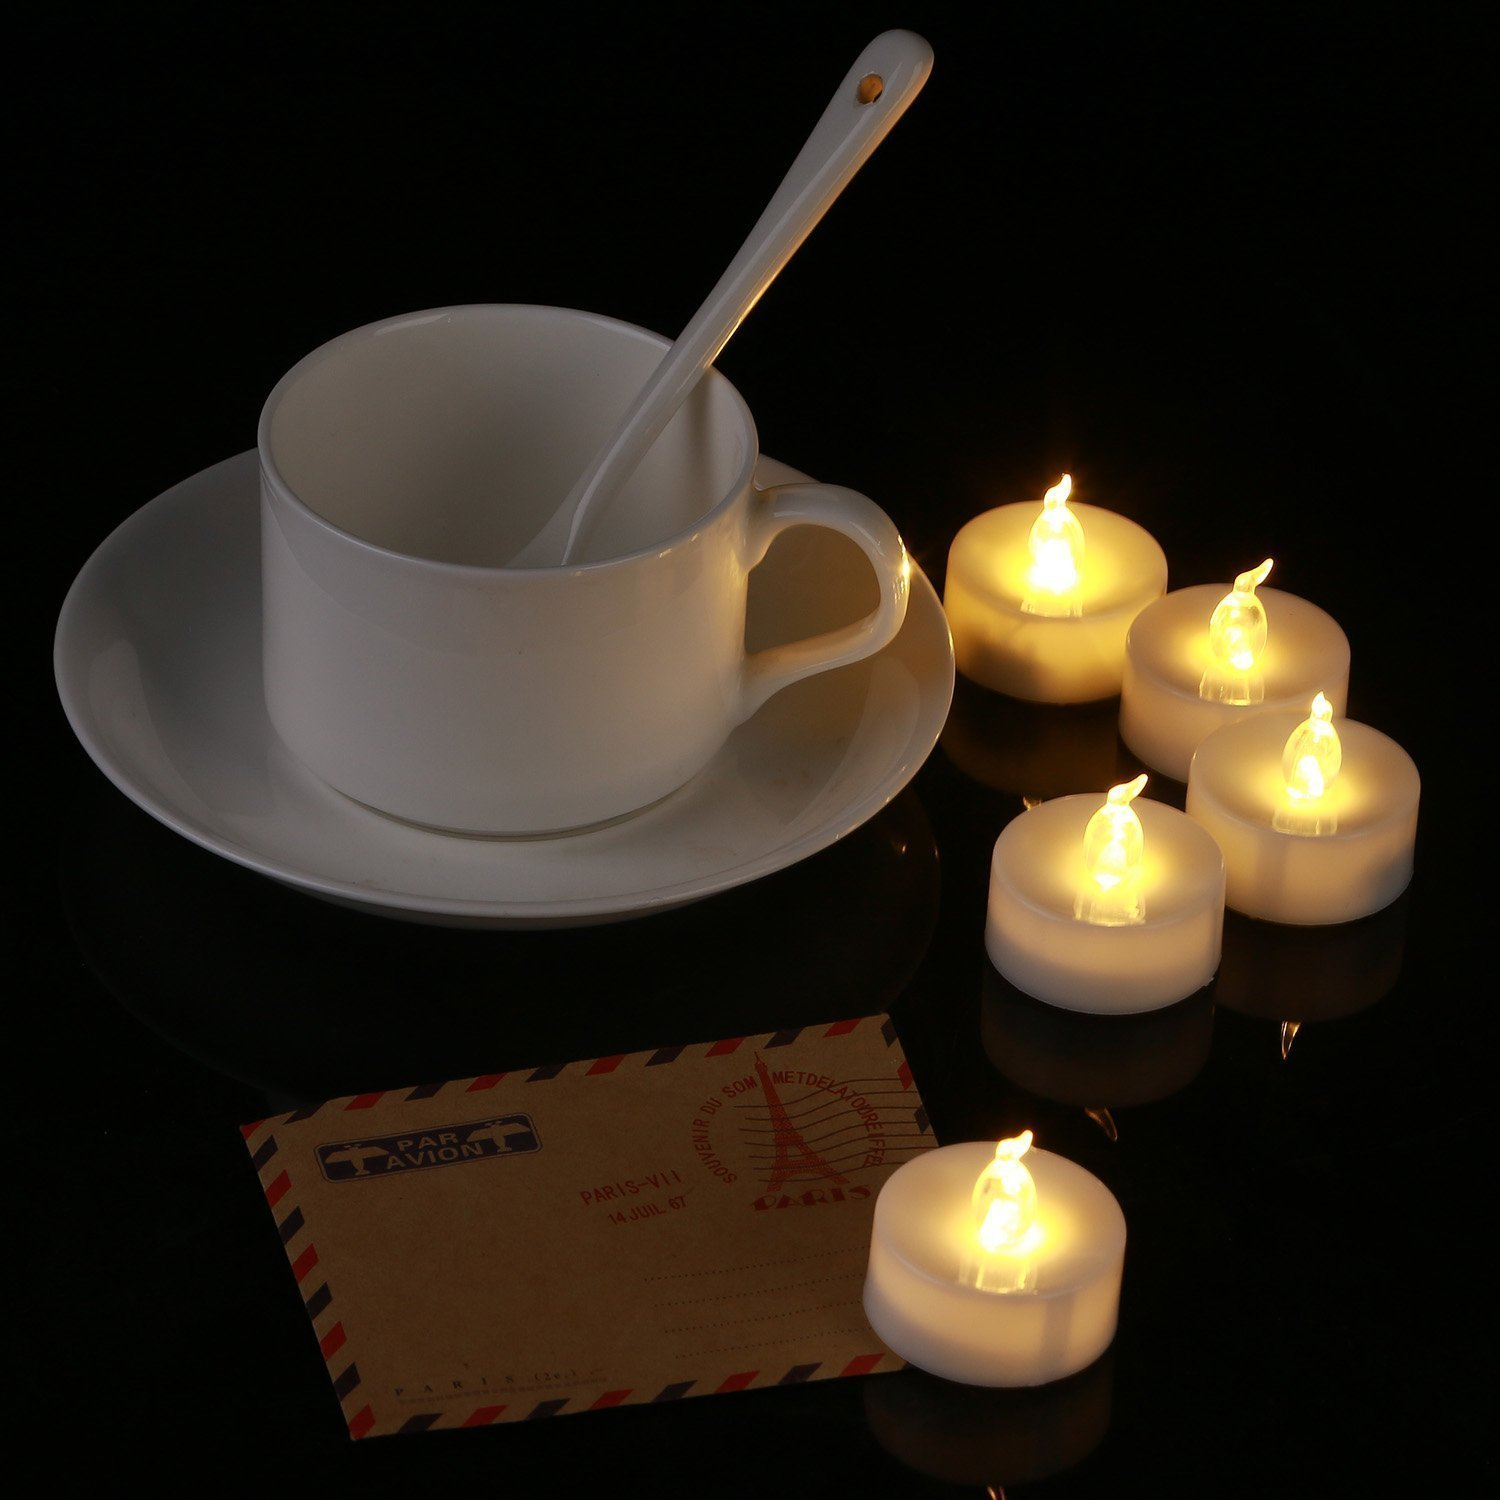 Homemory 24 PACK Warm White Battery LED Tea Lights, Flameless Flickering Tealight Candle, Dia 1.4'' Electric Fake Candle for Votive, Wedding, Party, Table, Dining room, Gift by Homemory (Image #3)